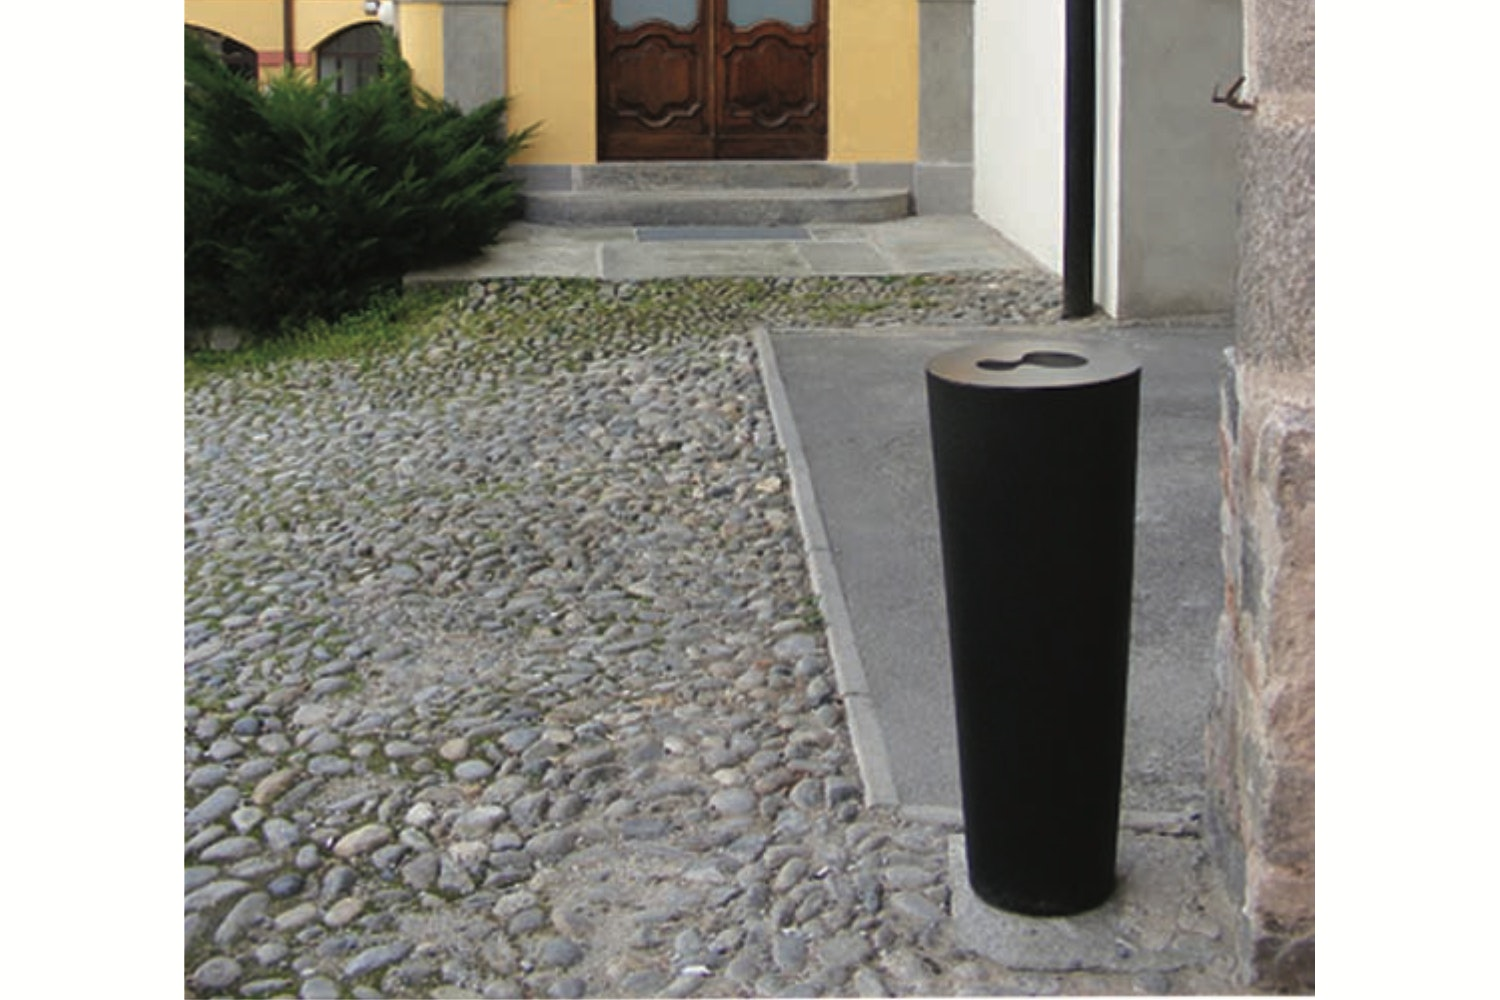 Ashtray by Paolo Rizzatto for Serralunga